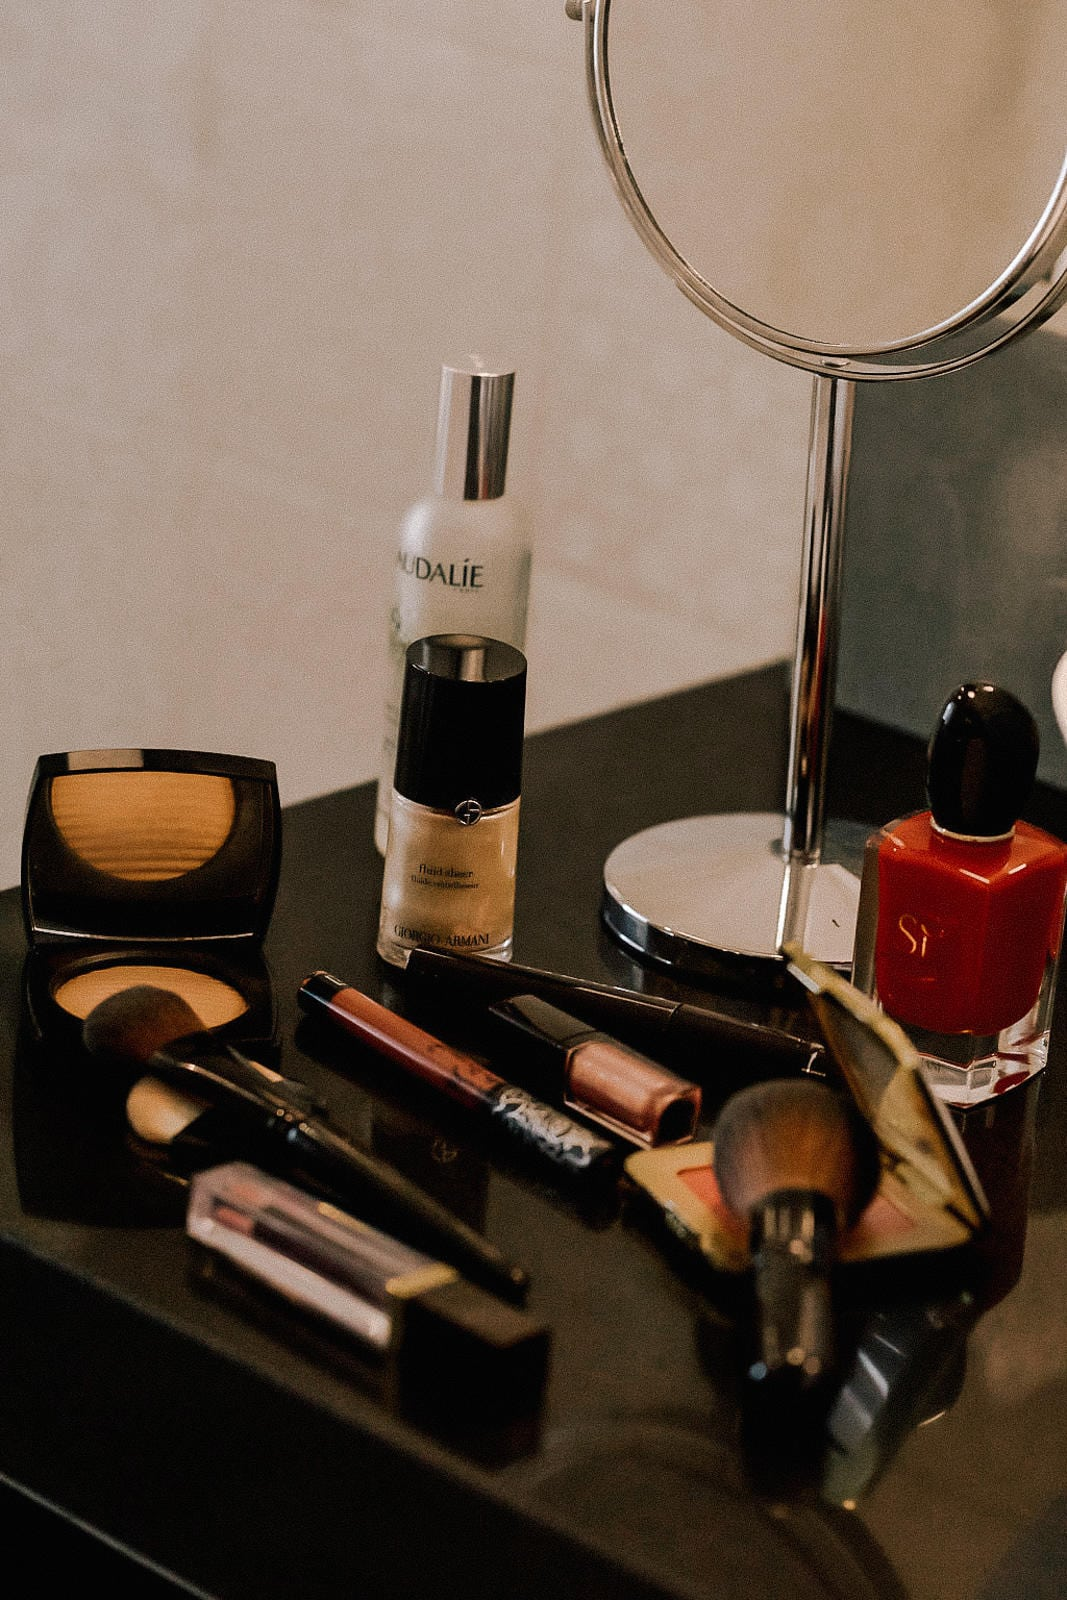 Tips to Get Ready Faster, Giorgio Armani Makeup, Pam Hetlinger Morning Routine | TheGirlFromPanama.com